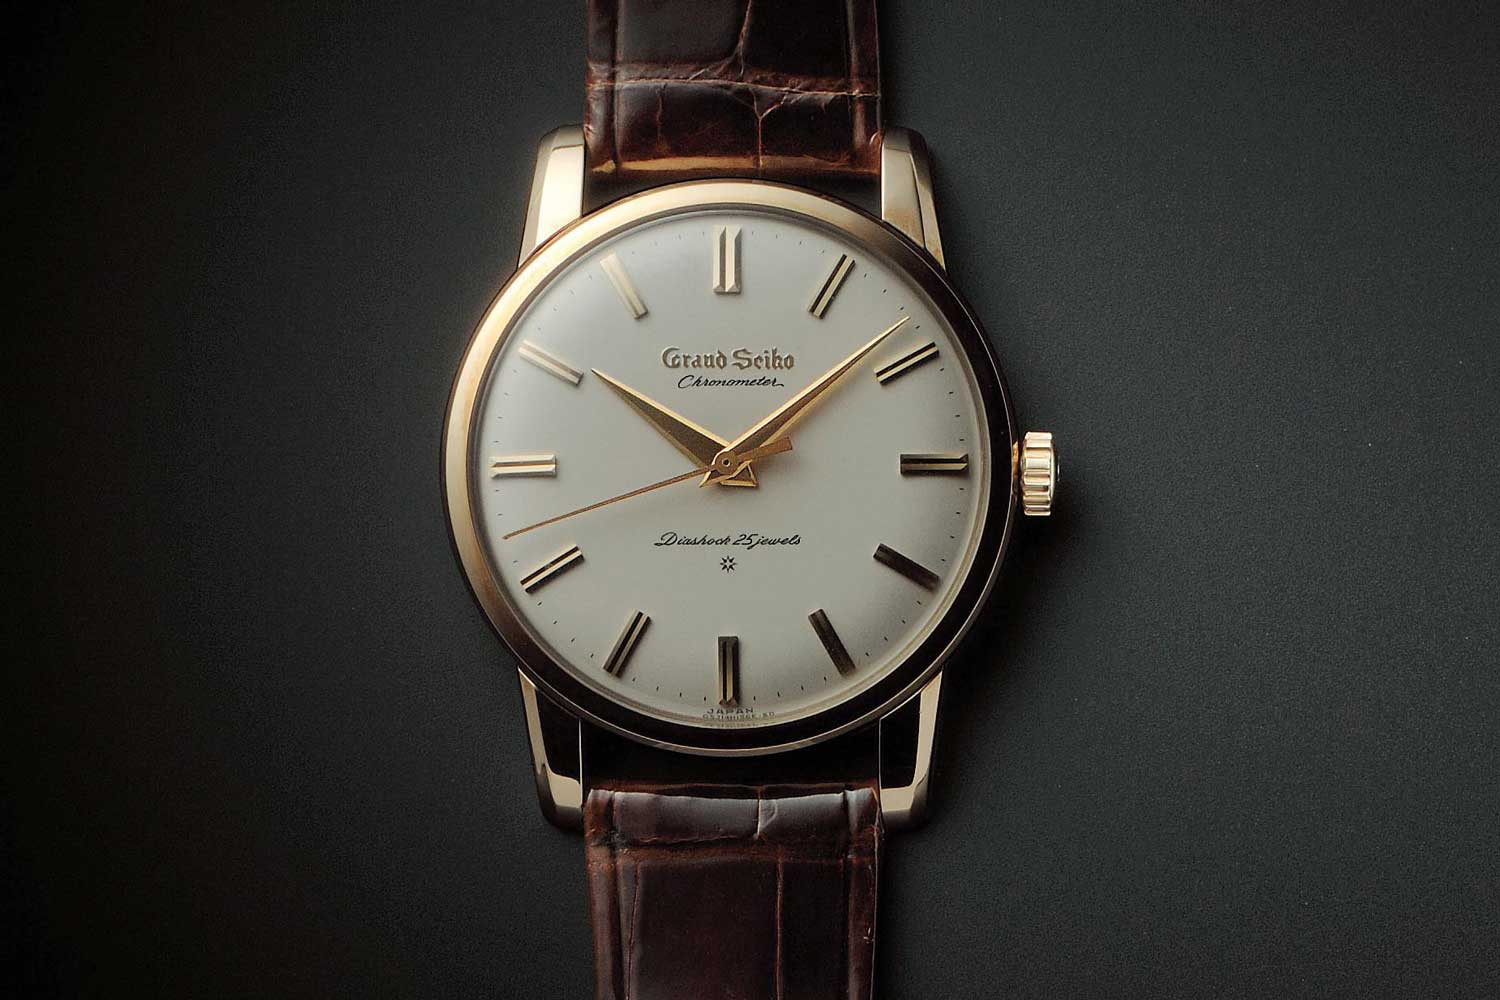 The first Grand Seiko model debuted in 1960